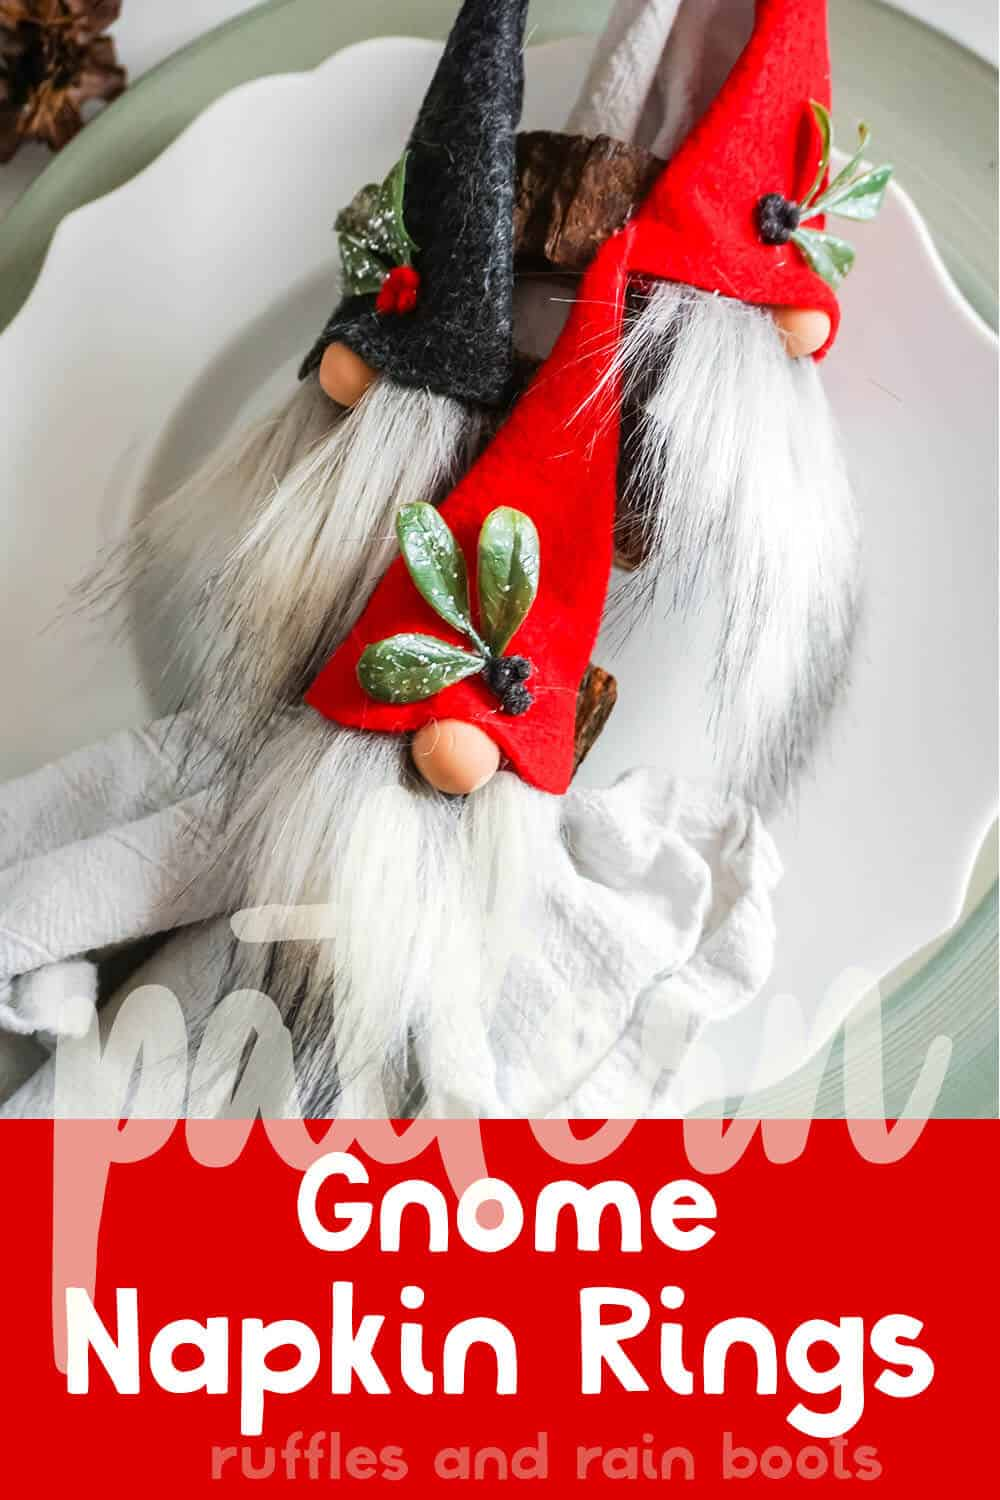 christmas gnome craft to make a gnome napkin ring with text which reads pattern gnome napkin rings